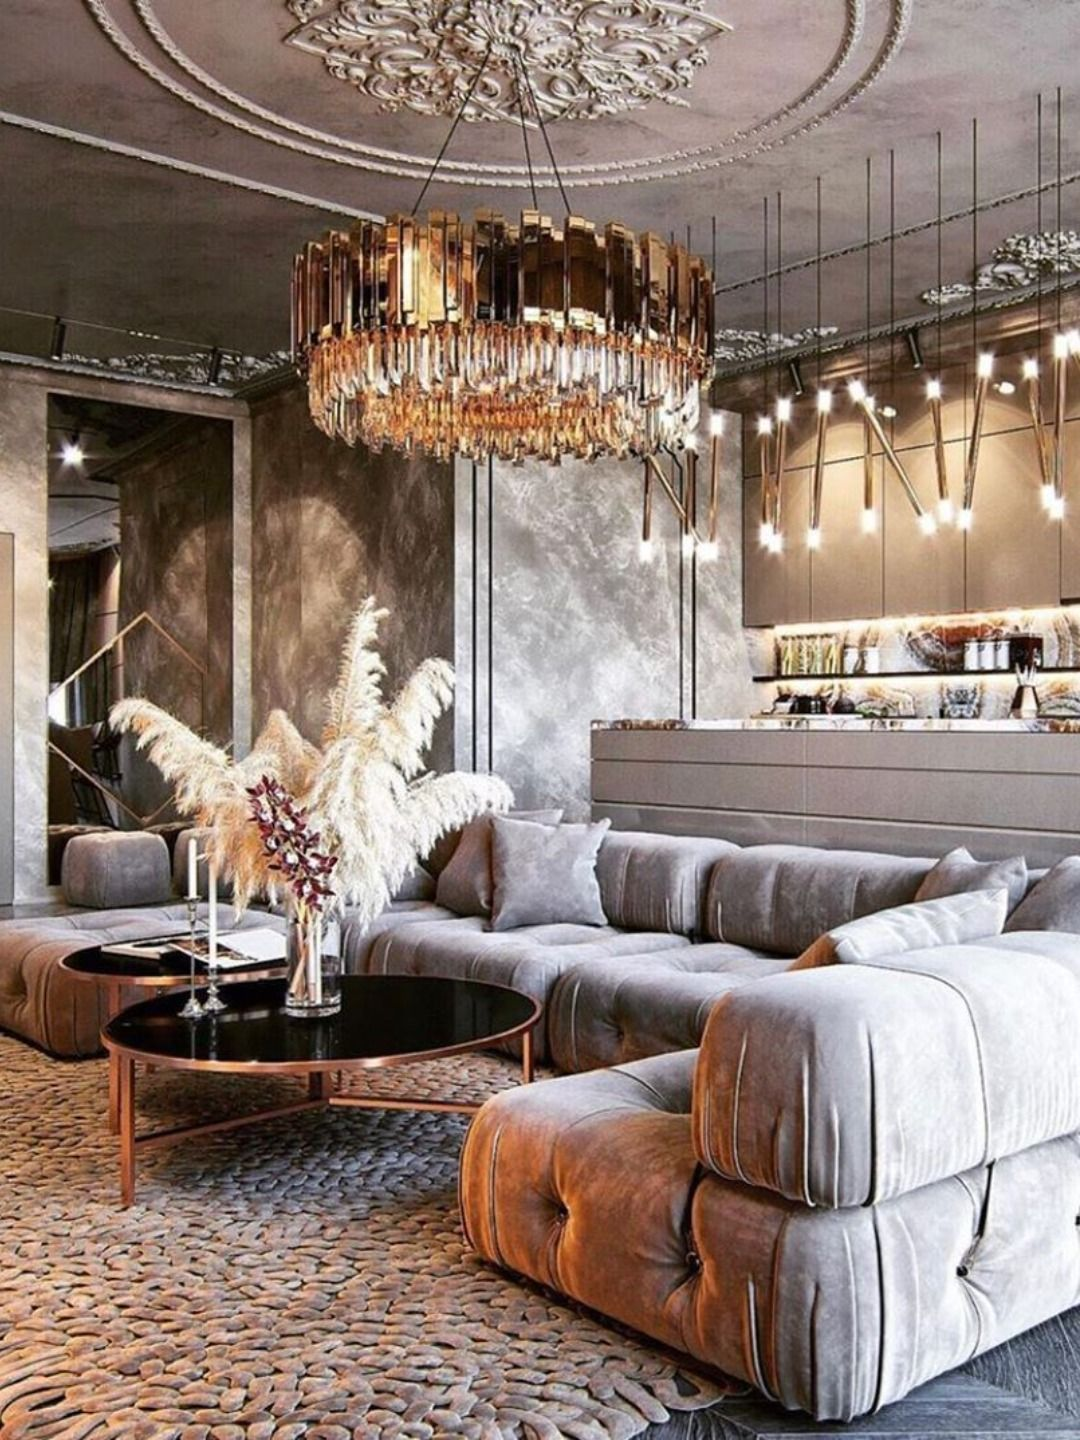 A Luxury Residence Idealized For A Mega Art Collecting Couple Interior Design Trends Contemporary Interior Design Luxury Interior Design